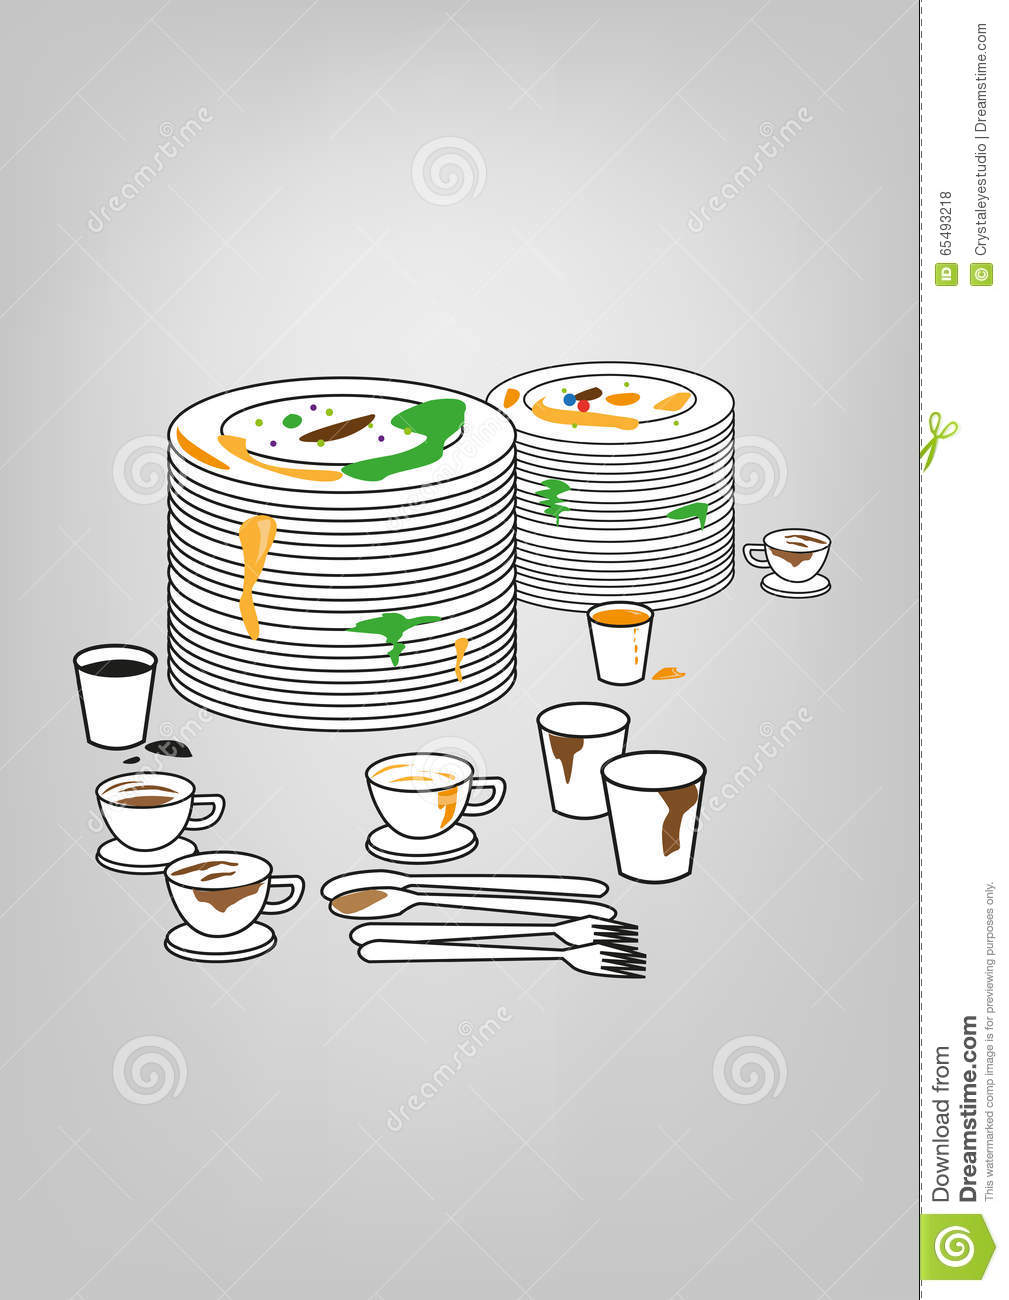 Messy Plates and utensils. Kitchen Cleaning Supply concept. Editable Clip Art